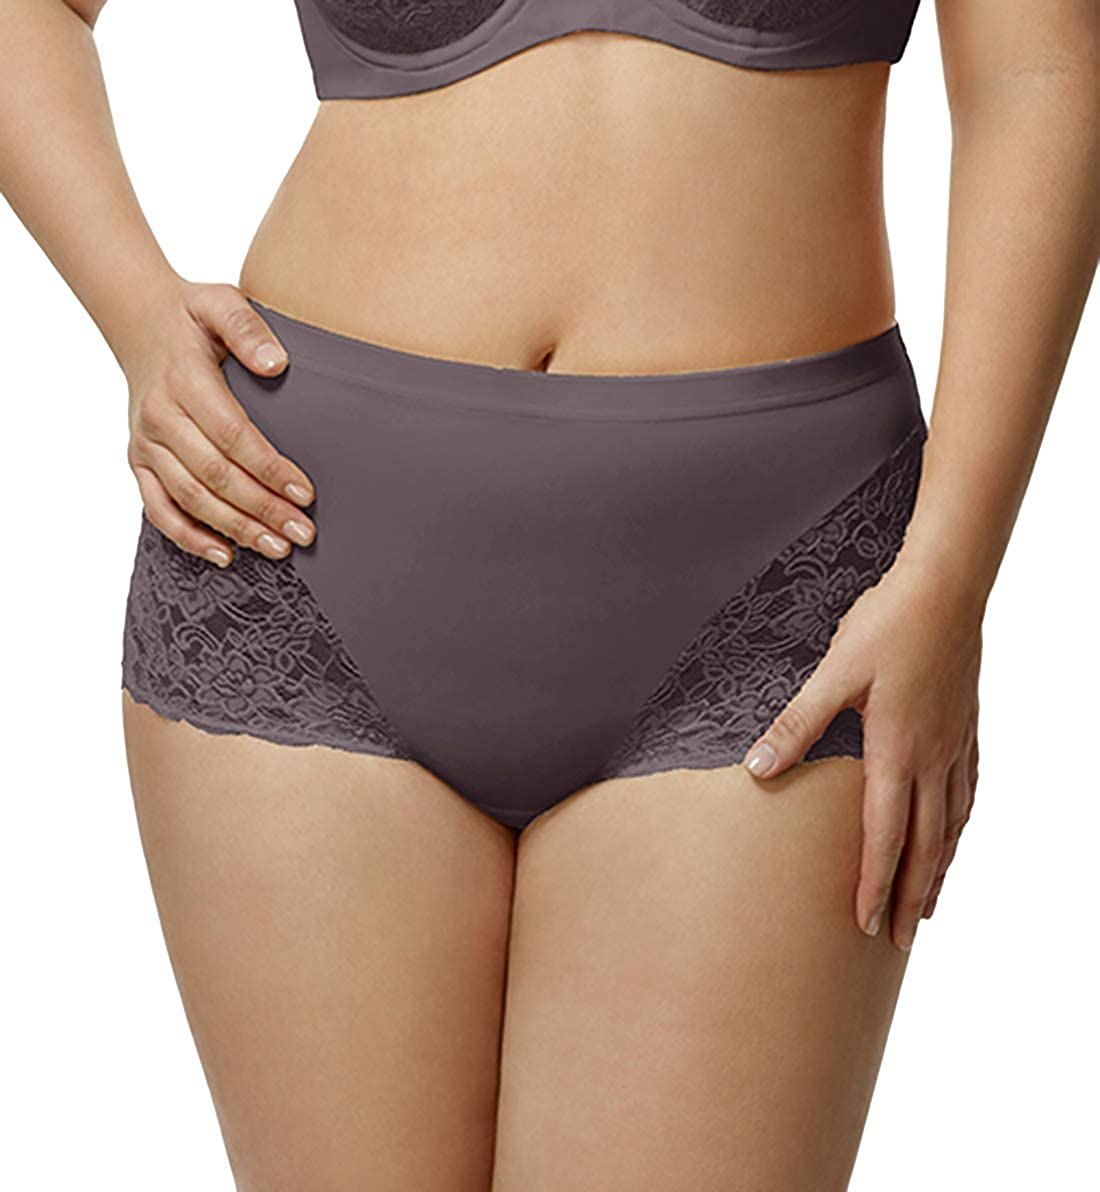 Elila Stretch Max 68% OFF Lace Cheeky Credence Panty 3311 Full